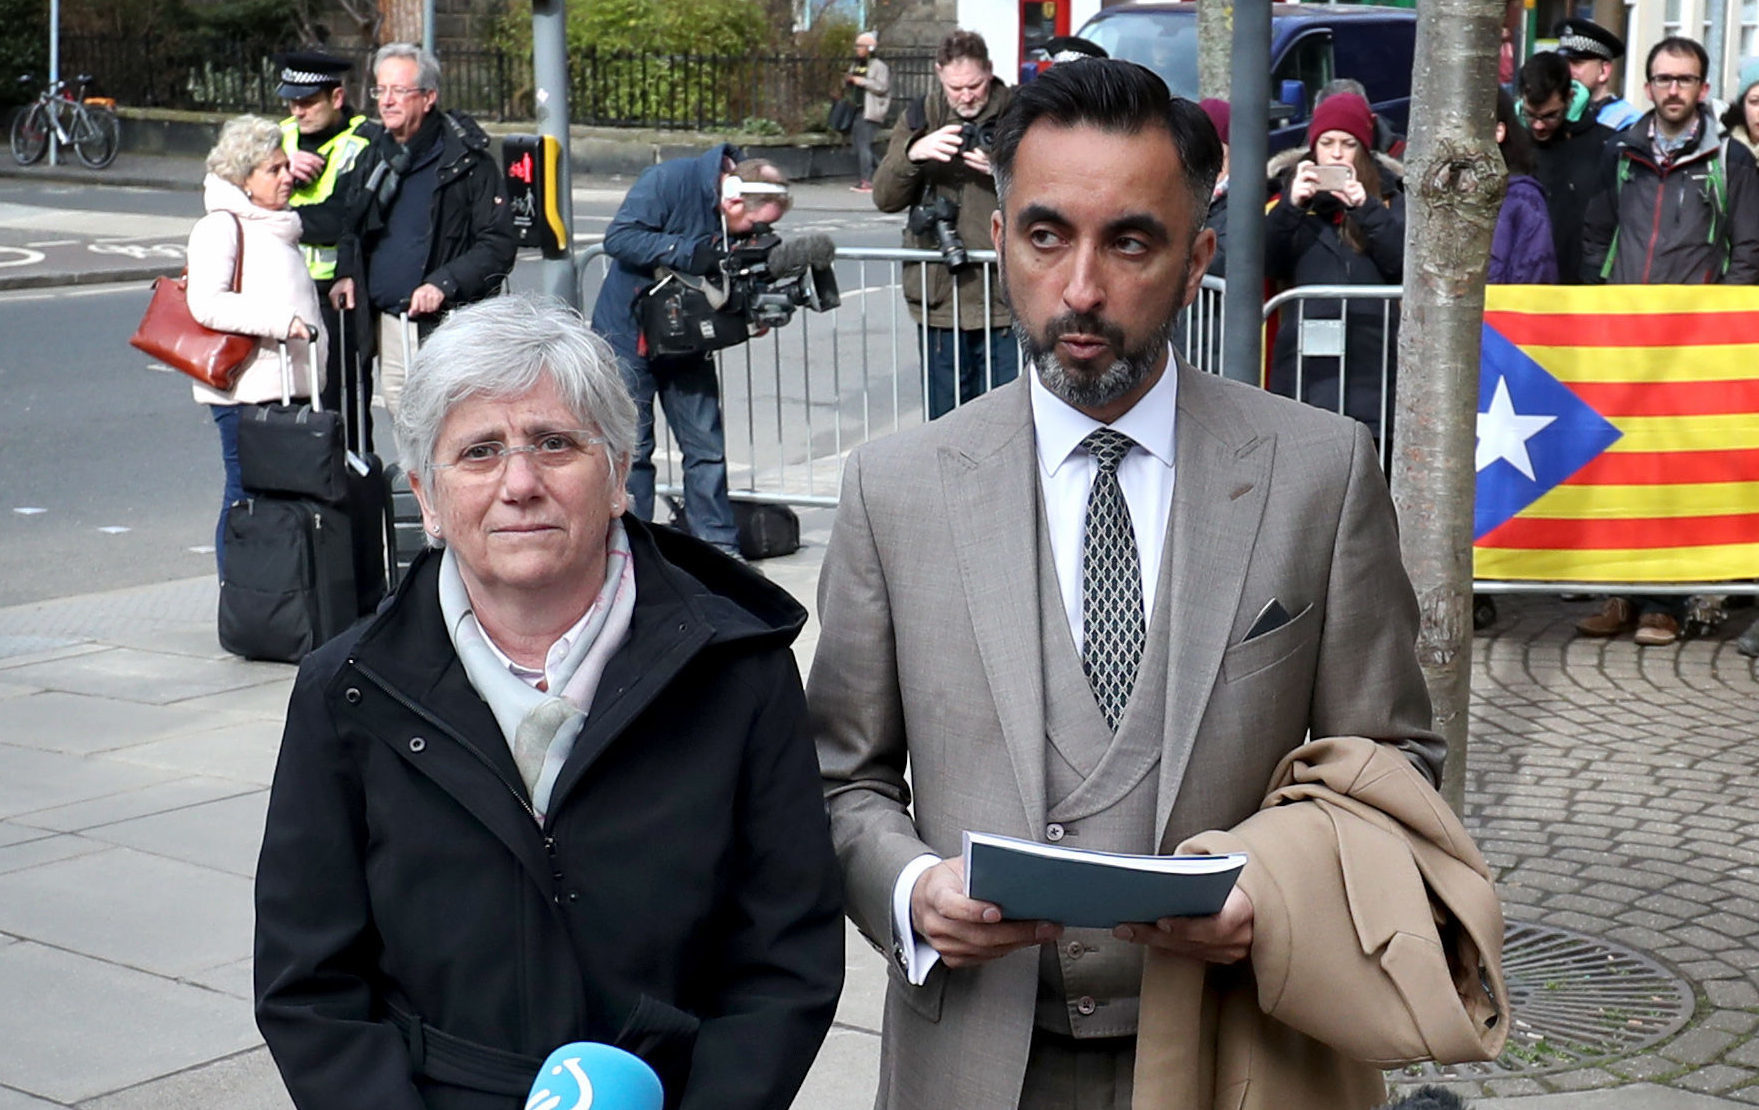 Former Catalan Minister Professor Clara Ponsati who is facing extradition to Spain attends Edinburgh police station with her lawyer Aamer Anwar (Jane Barlow/PA Wire)